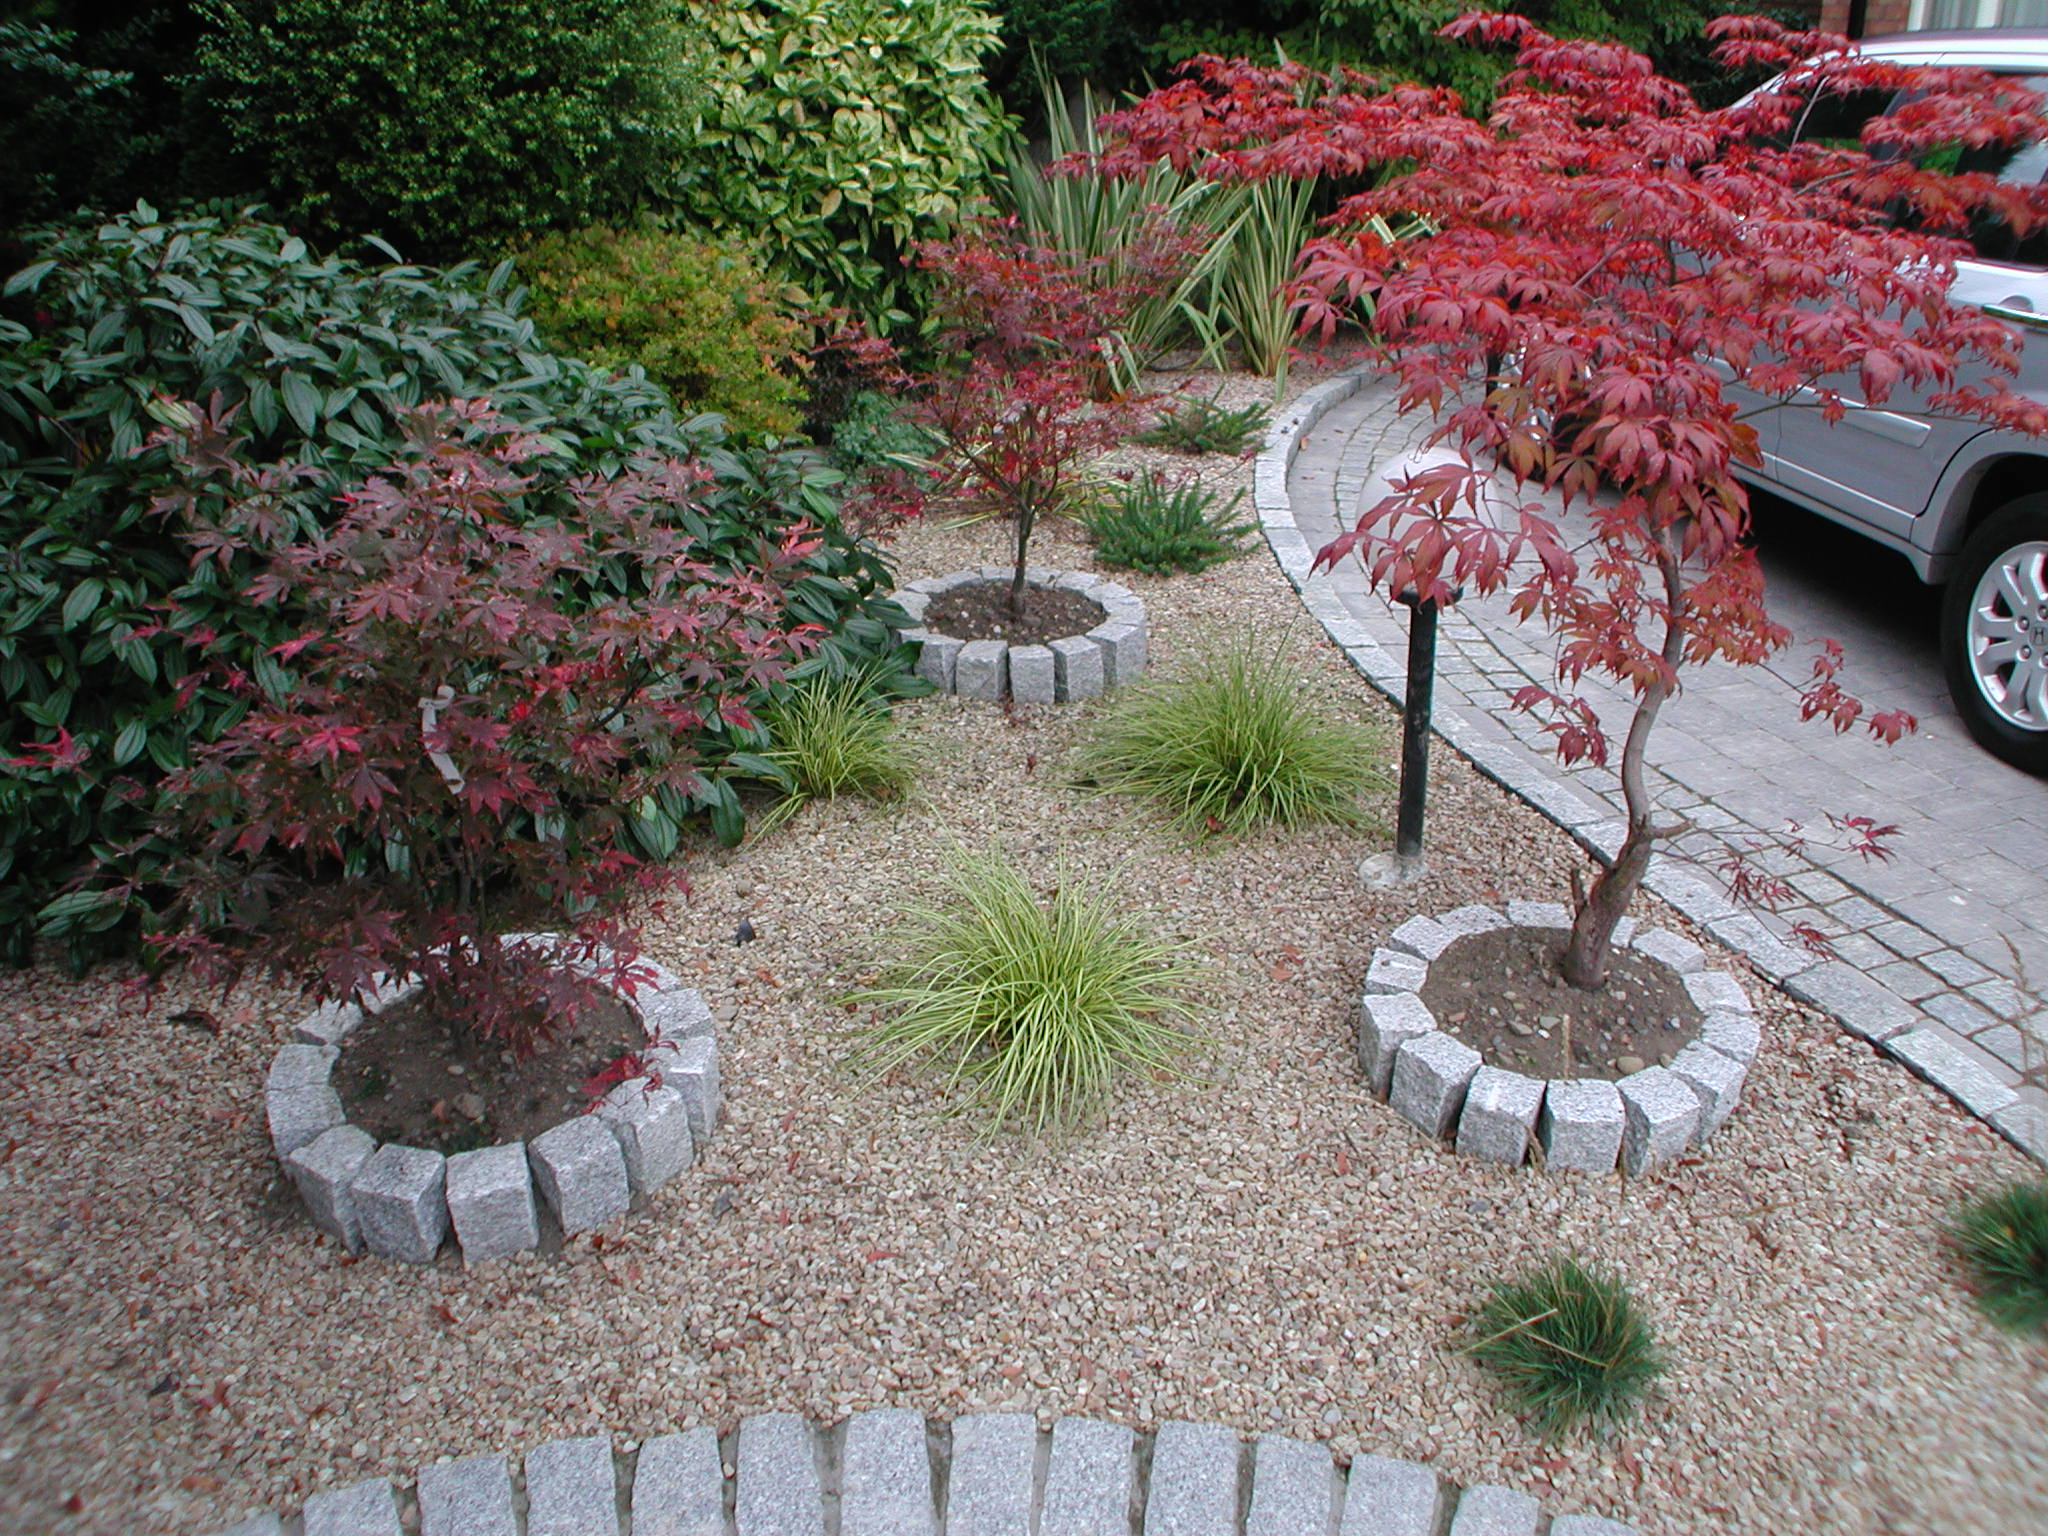 Low maintenance garden design dublin for Garden designs ideas pictures